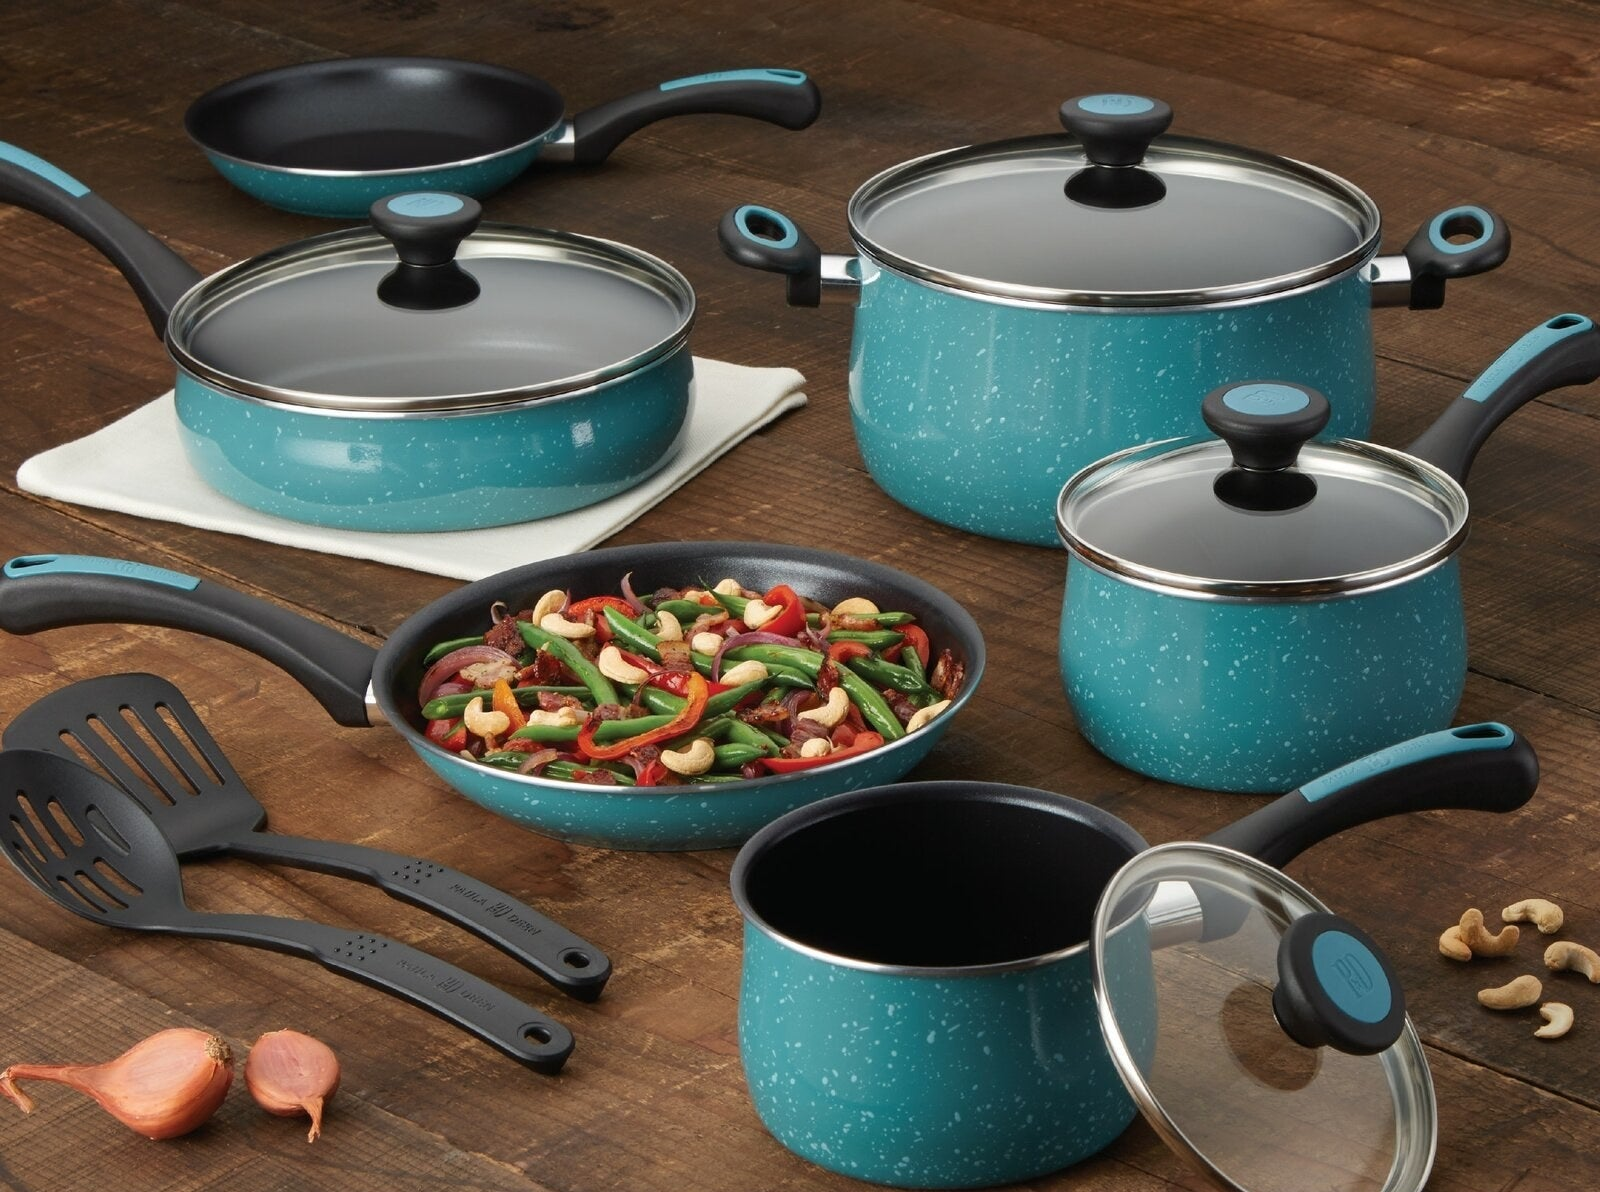 The cookware set in teal with speckled porcelain exterior